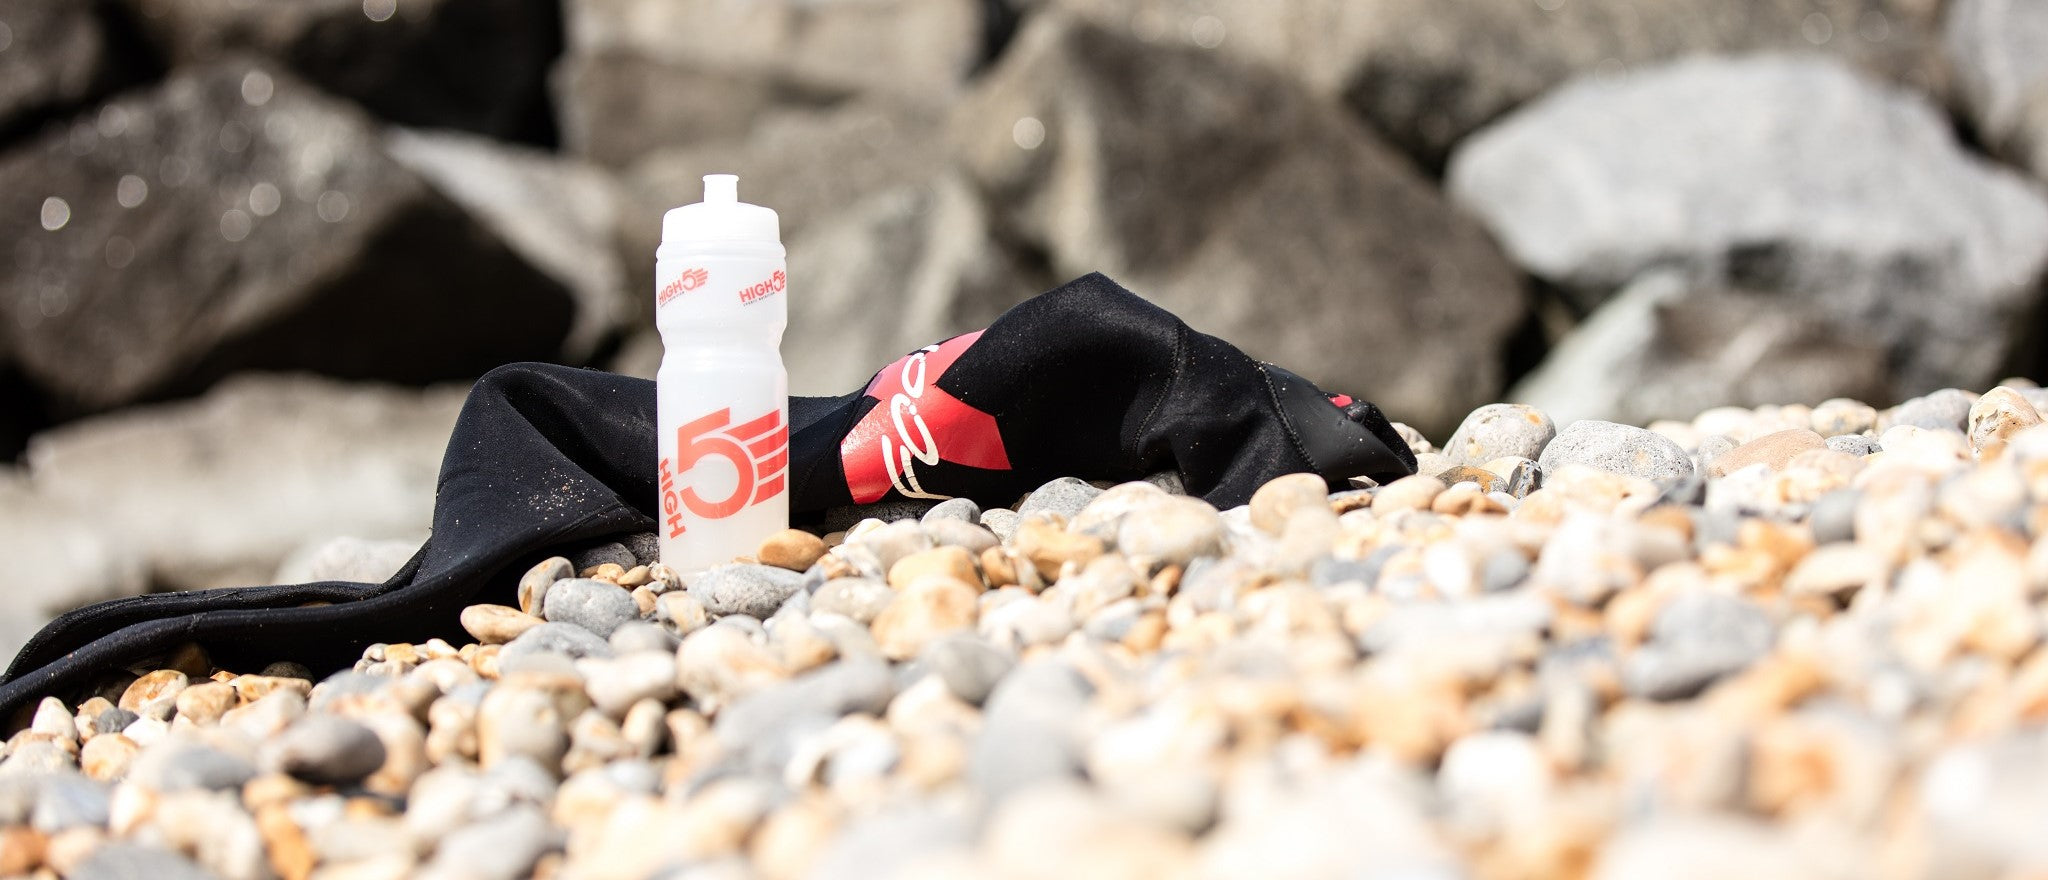 Water bottle and wetsuit on a beach